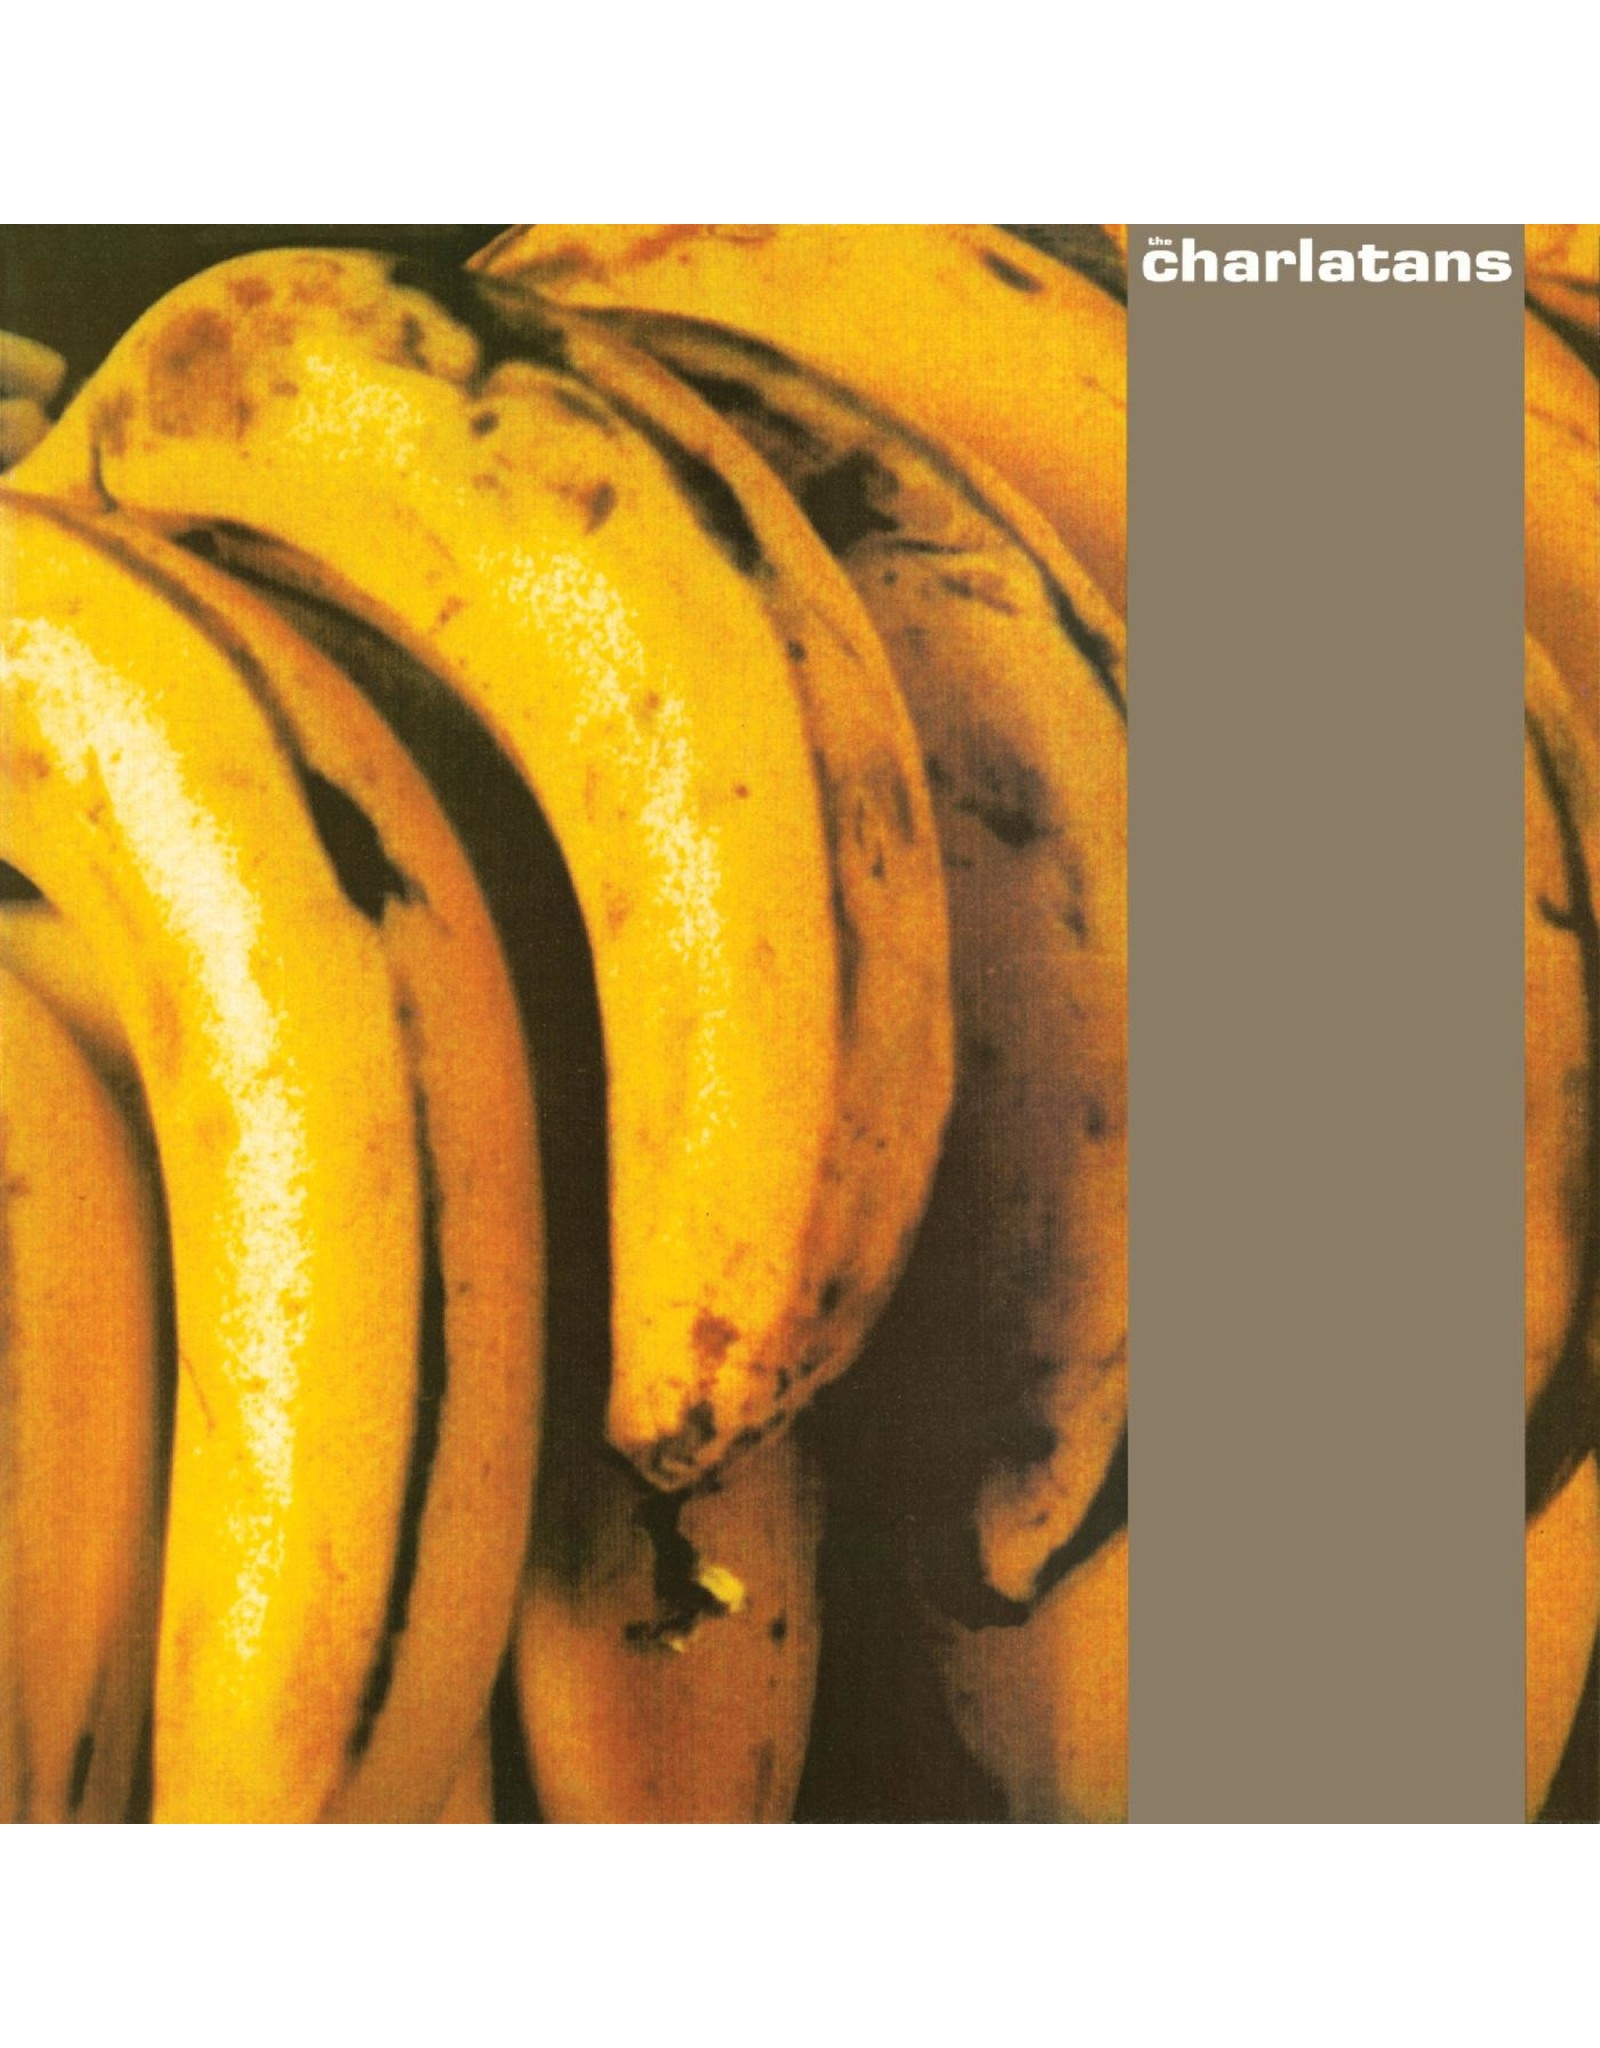 New Vinyl The Charlatans UK - Between 10th and 11th (Expanded Edition, Clear) 2LP